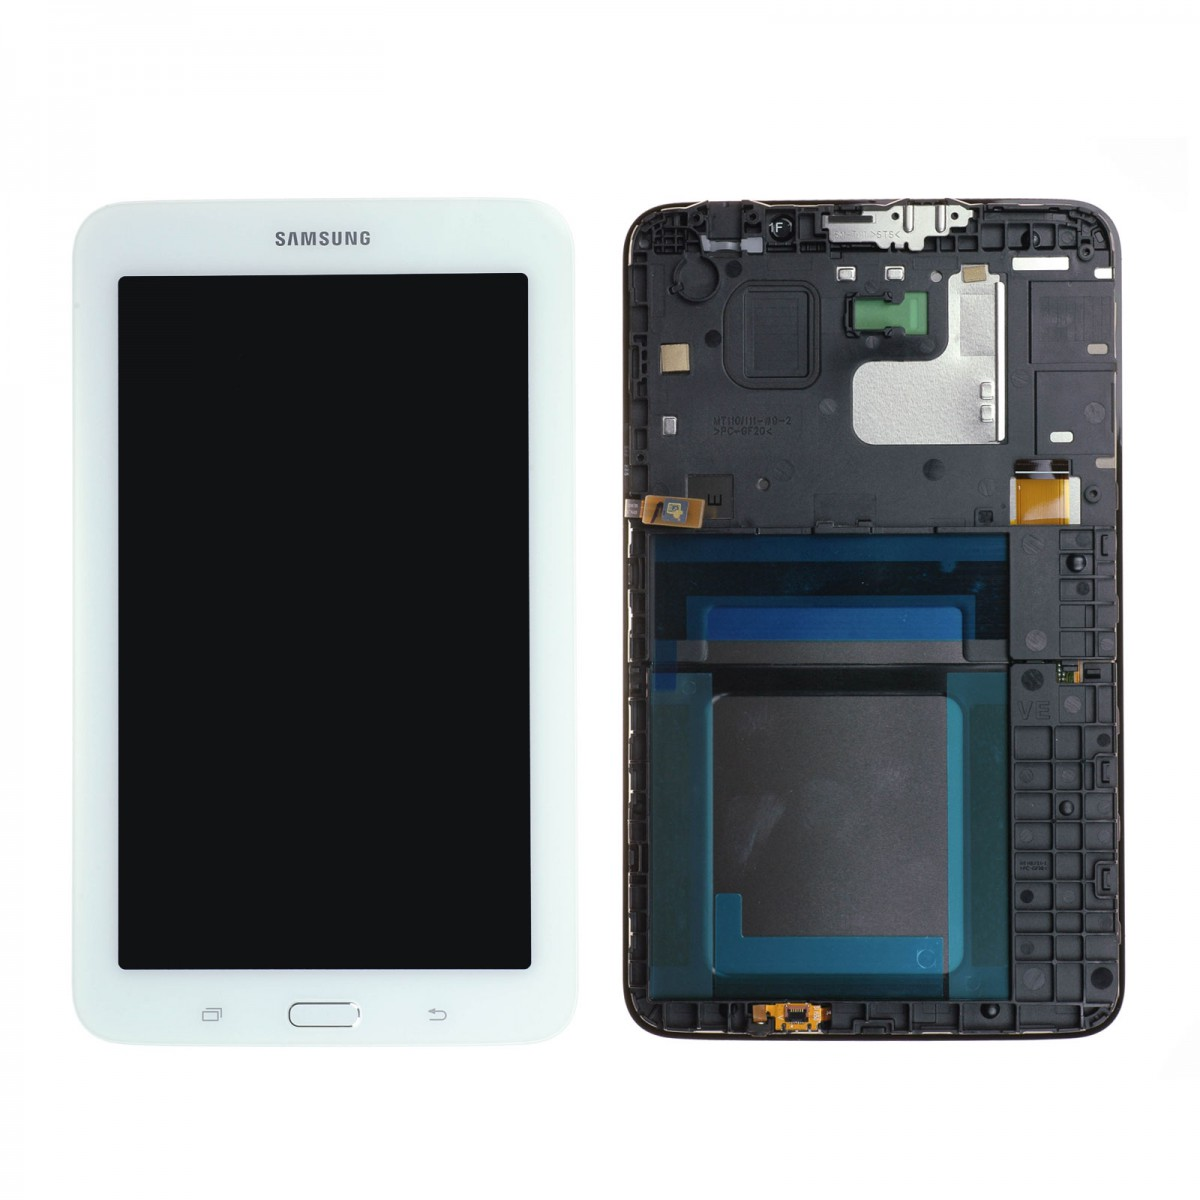 Cran complet samsung galaxy tab 3 lite 7 0 t113 blanc for Photo ecran samsung 7